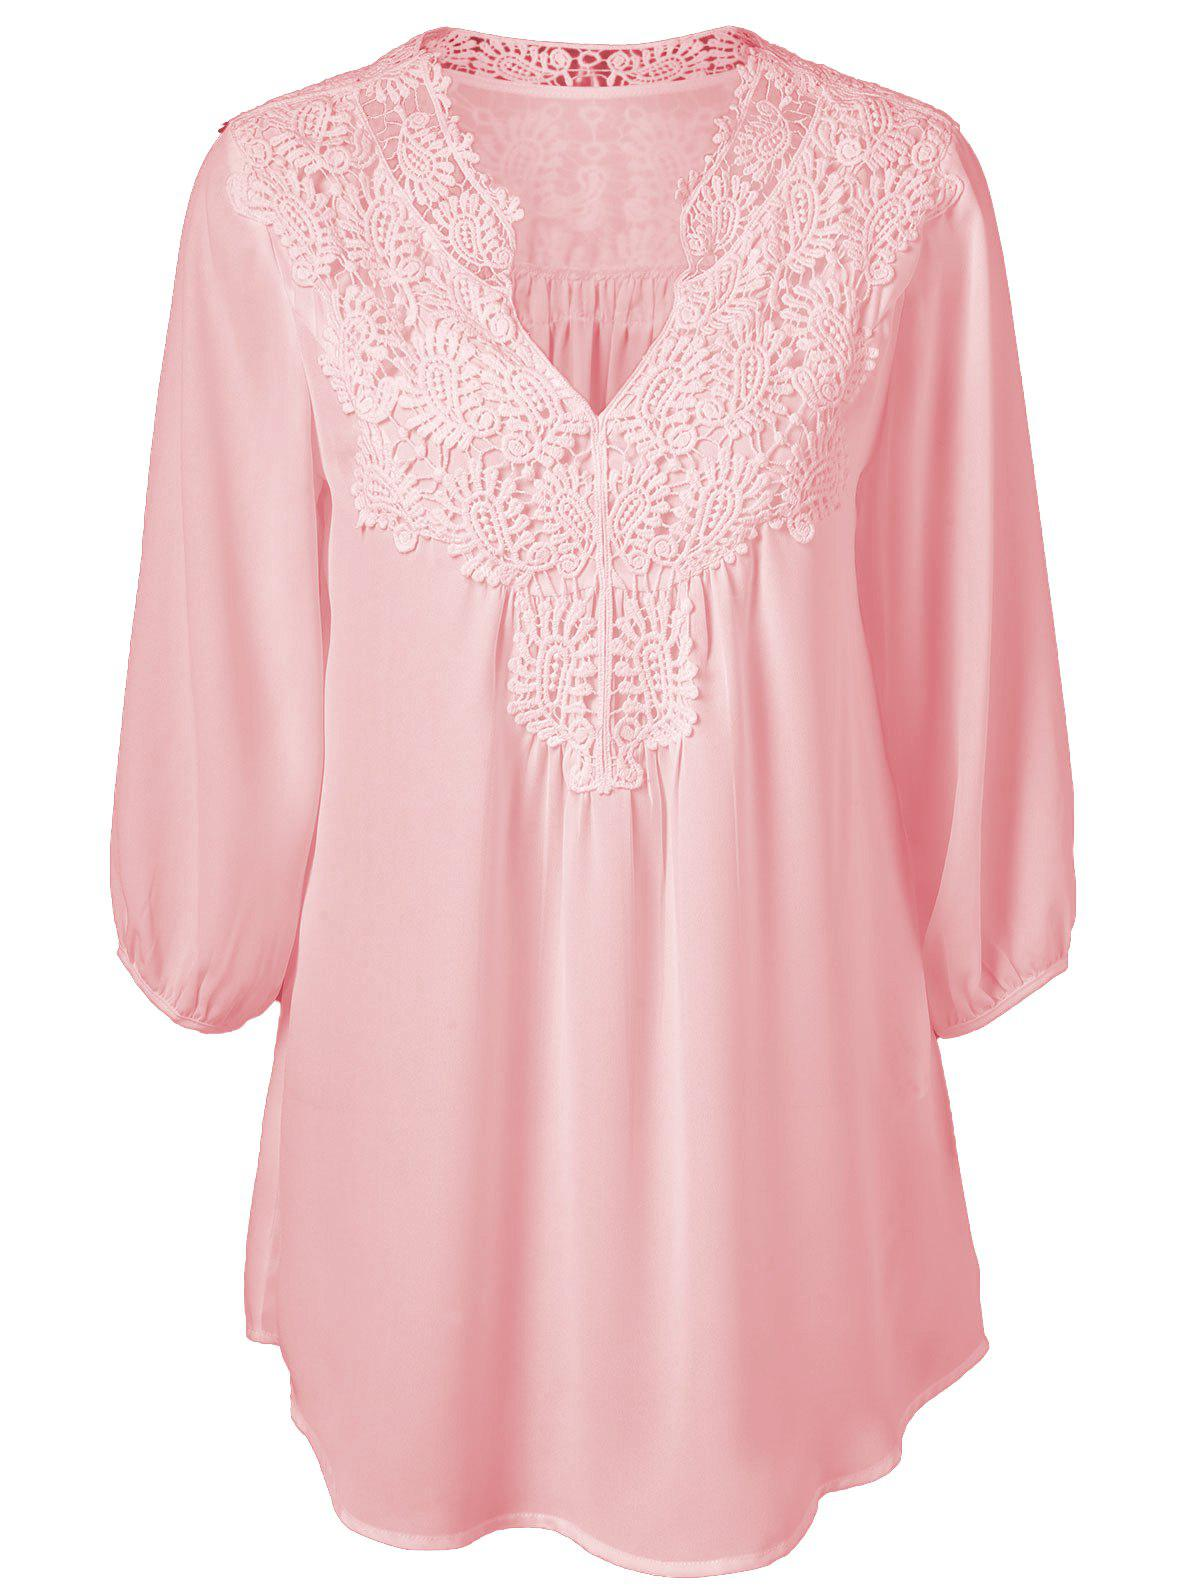 Plus Size Sweet Crochet Spliced Tunic BlouseWOMEN<br><br>Size: 2XL; Color: PINK; Material: Polyester; Shirt Length: Long; Sleeve Length: Three Quarter; Collar: V-Neck; Style: Casual; Season: Summer; Pattern Type: Patchwork; Weight: 0.2310kg; Package Contents: 1 x Blouse;